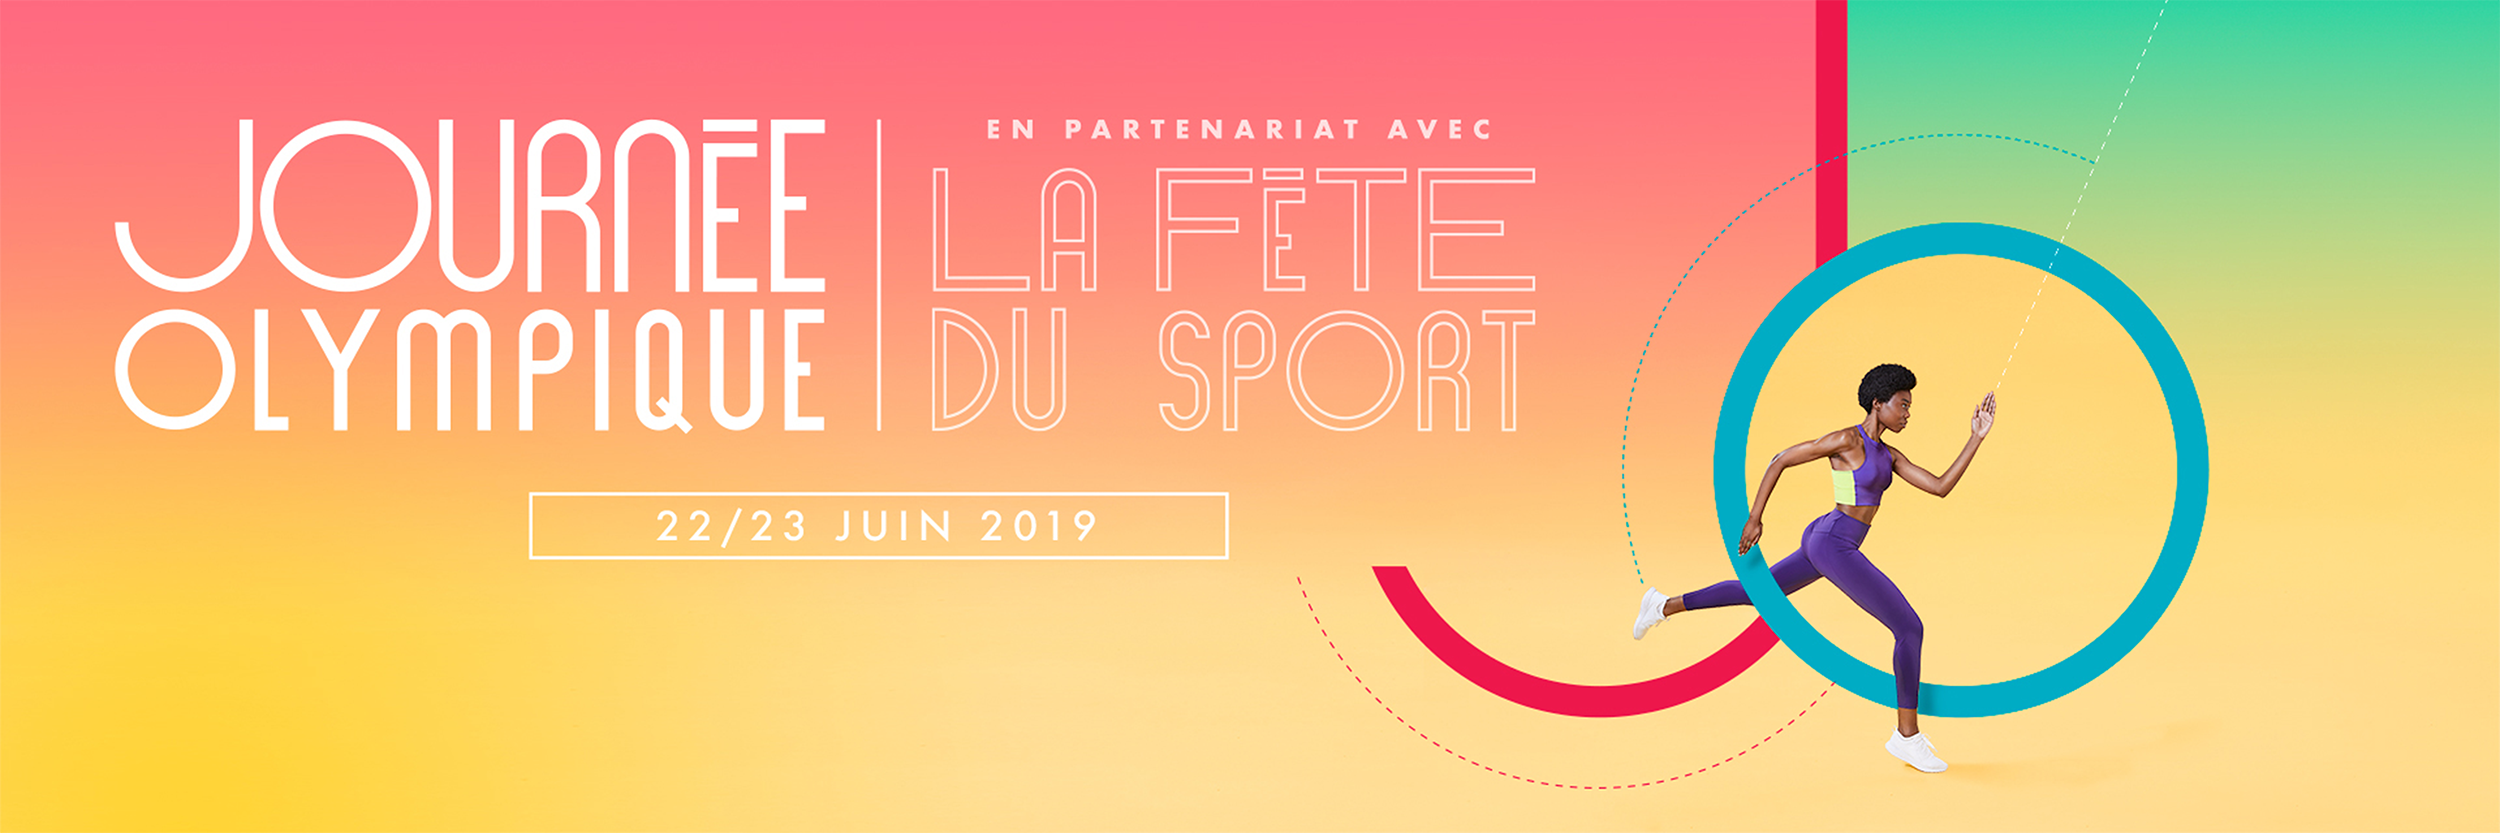 header journee olympique fete du sport